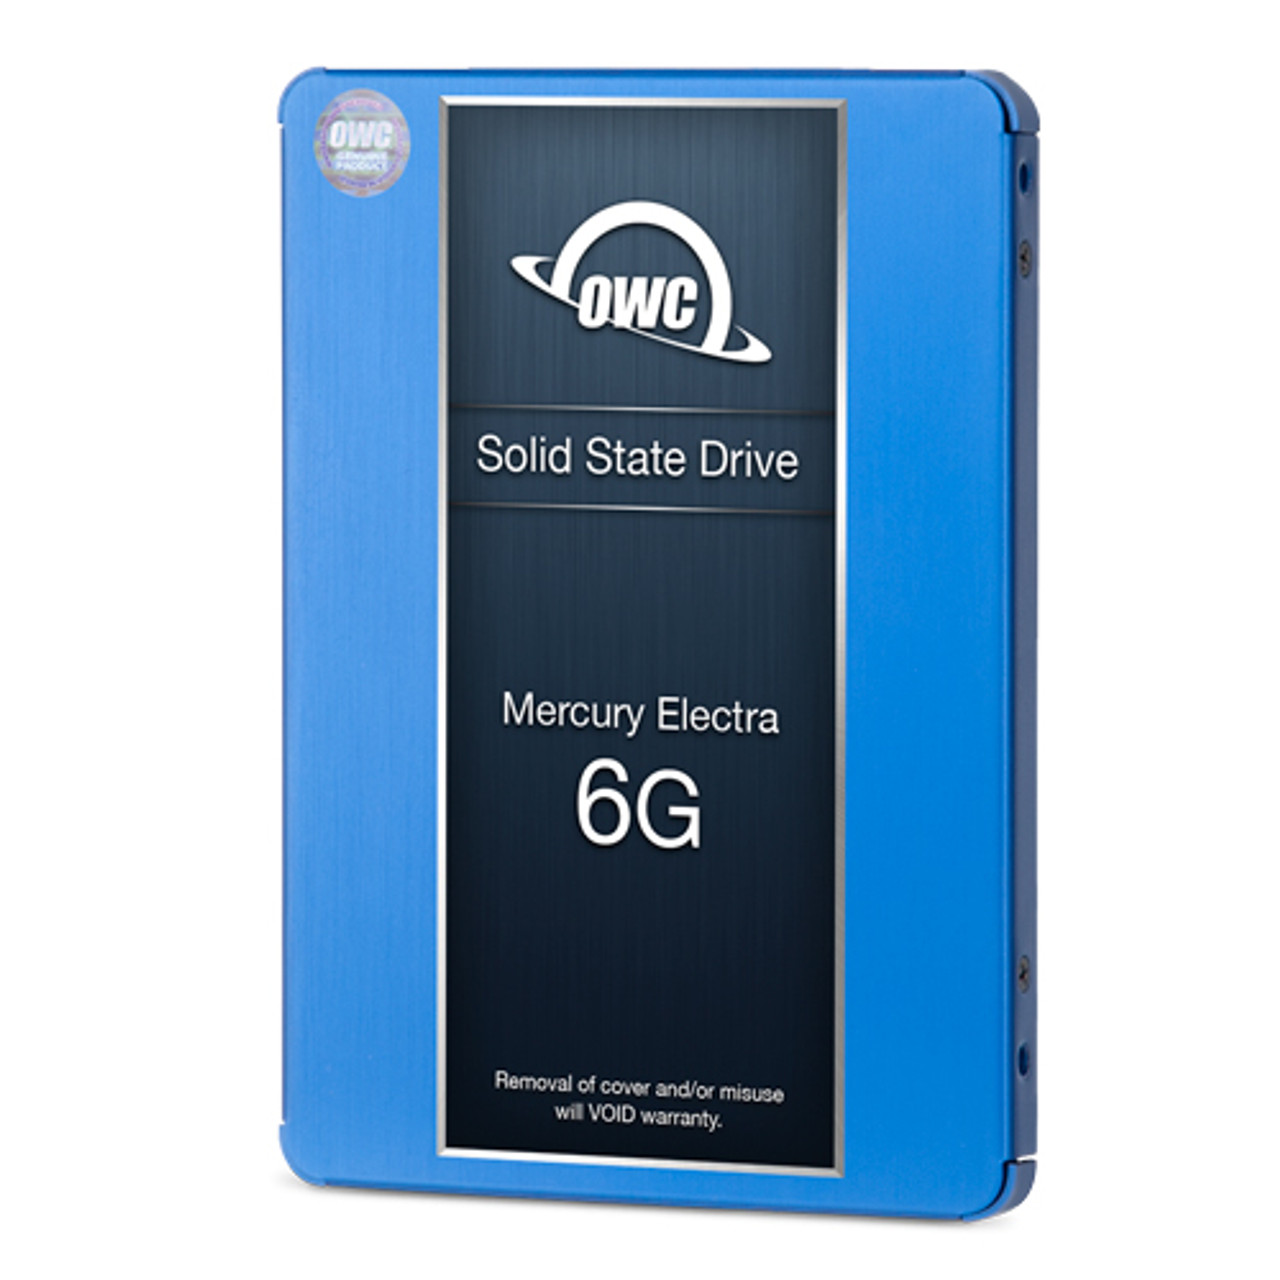 500GB OWC Mercury Electra 6G SSD - SSD Bay Add-In Kit for 2011 27-inch iMacs